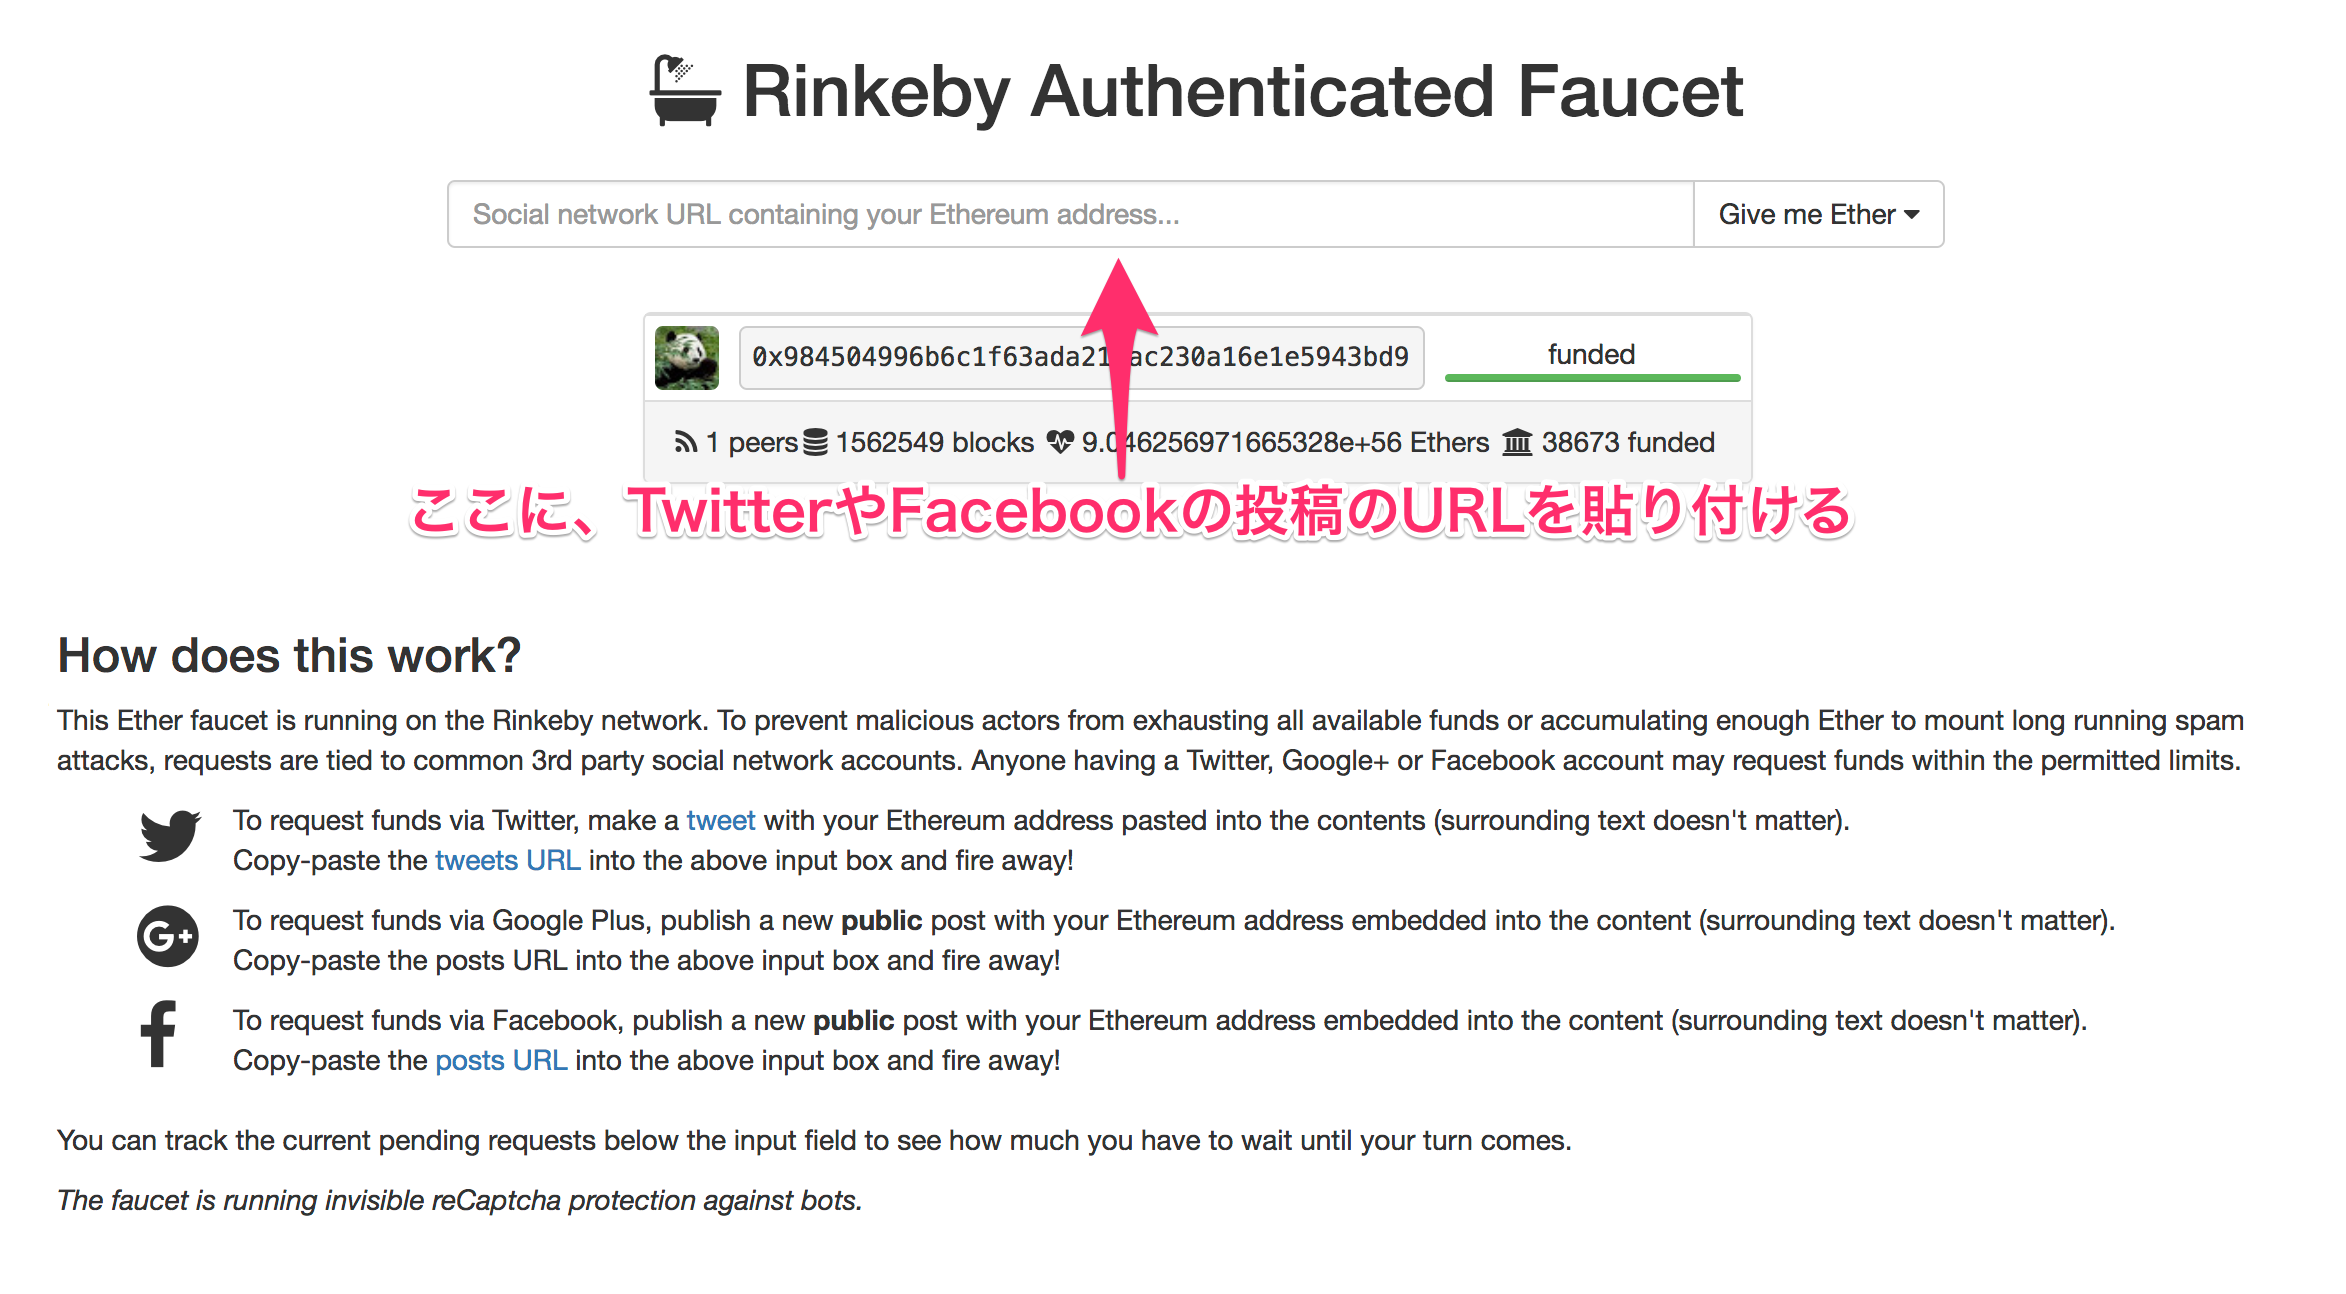 Rinkeby_Authenticated_Faucet.png